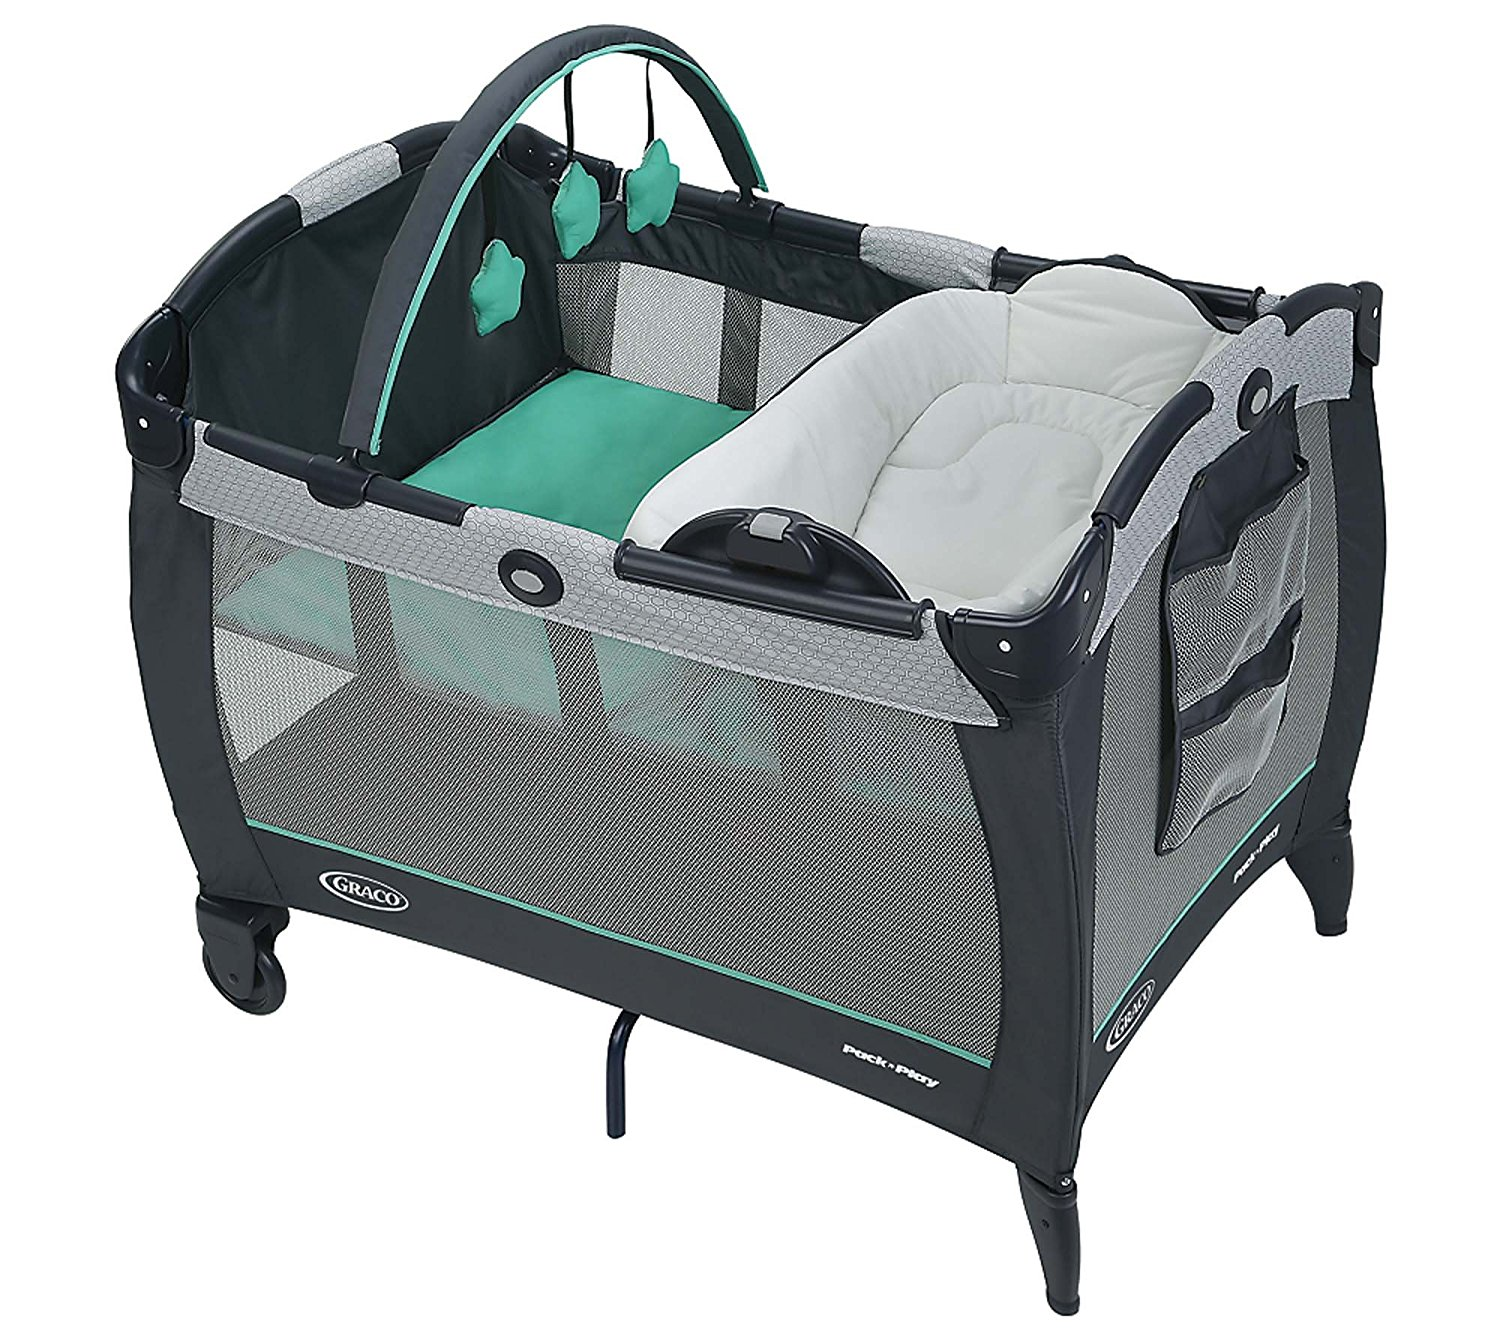 graco pack 'n play with reversible napper and changer playard, graco pack 'n play, graco playpen, best playpen for babies, playpen for babies, baby play yard